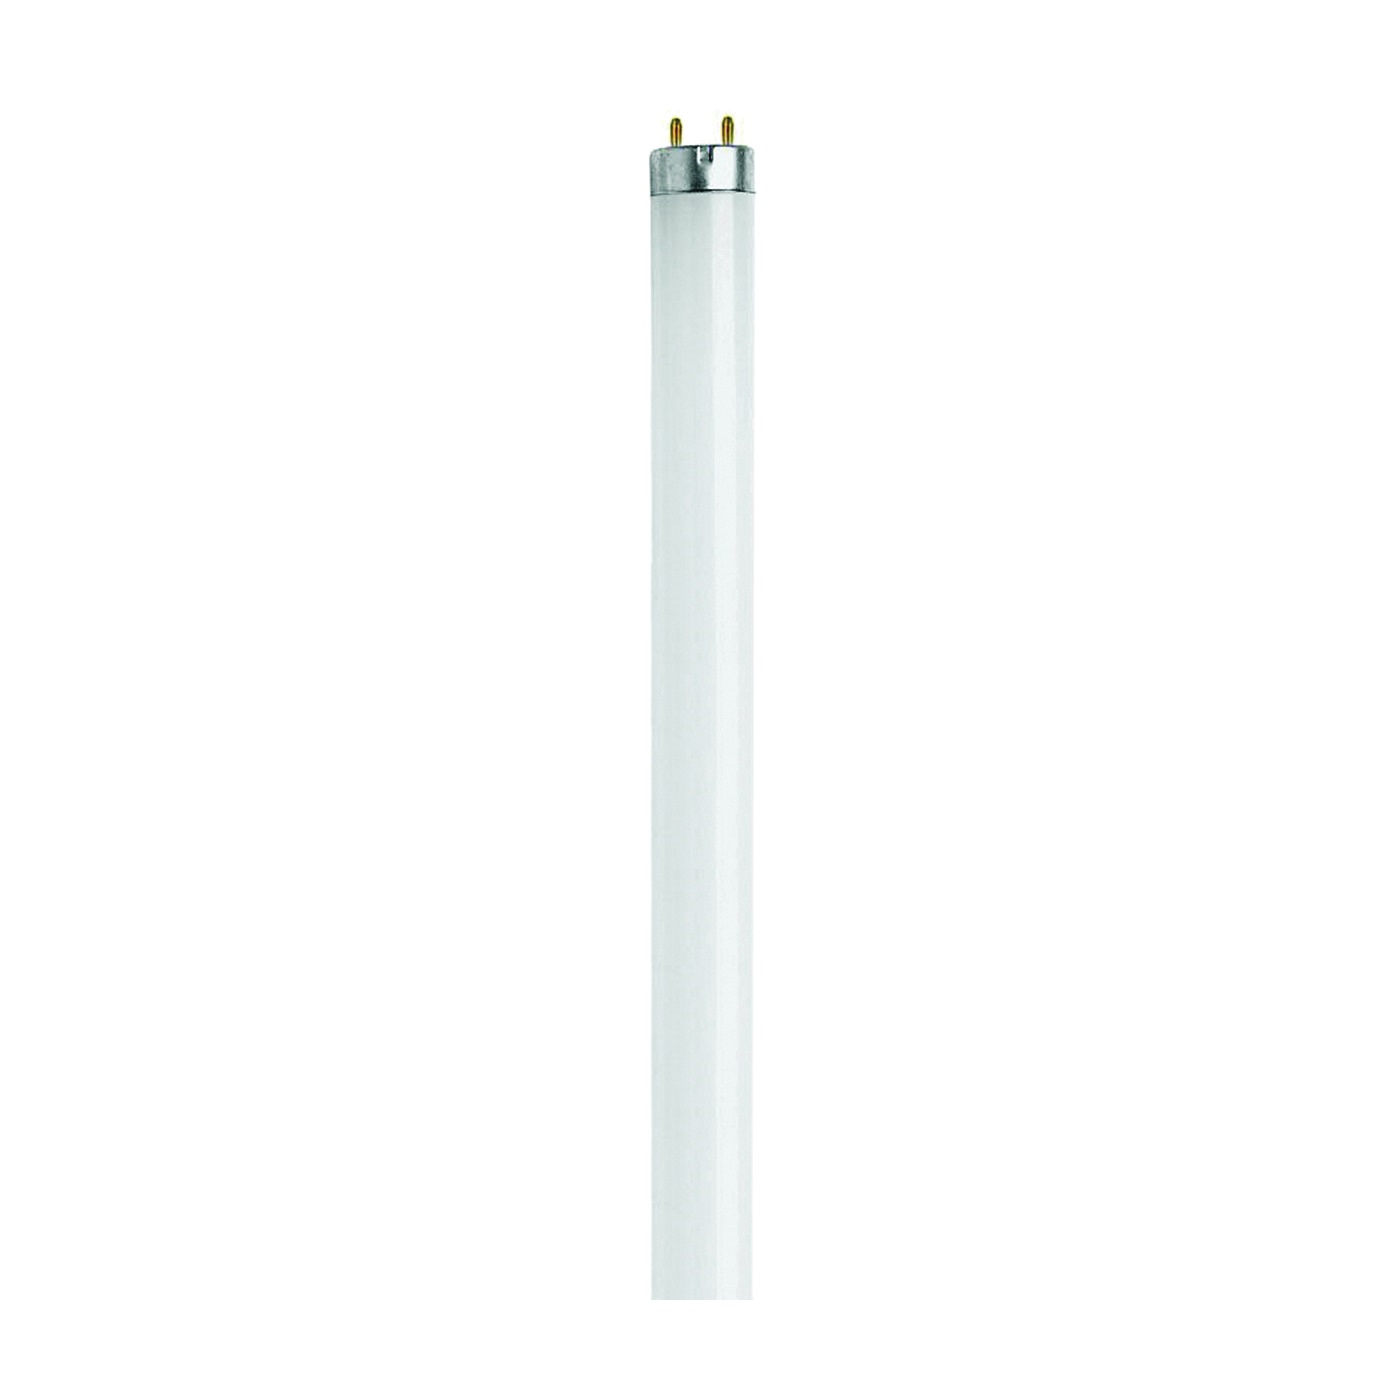 Picture of Feit Electric F20T12/CW/RP Fluorescent Lamp, 20 W, T12 Lamp, Medium G13 Lamp Base, 1200 Lumens, 4100 K Color Temp